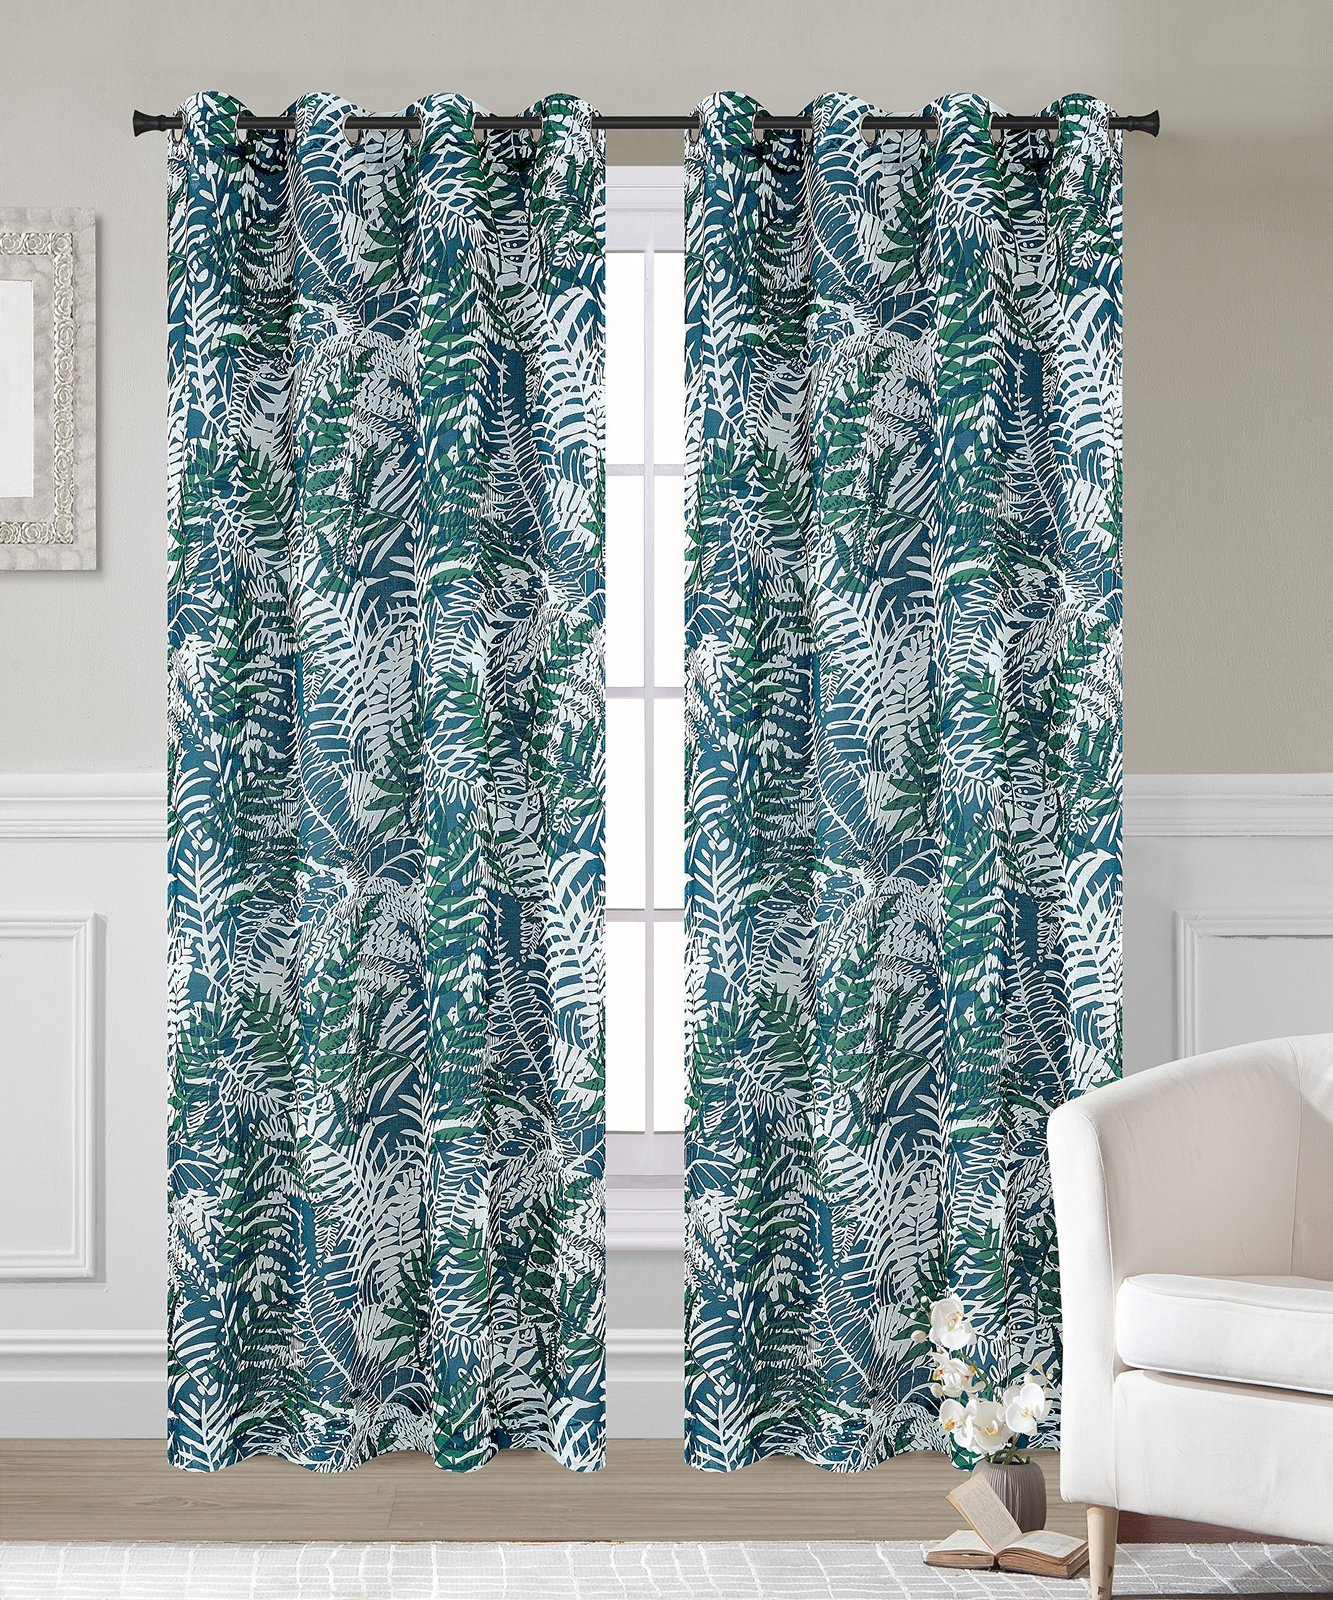 Urbanest 54-inch by 63-inch Palm Set of 2 Faux Linen Sheer Curtain Panels with G image 2